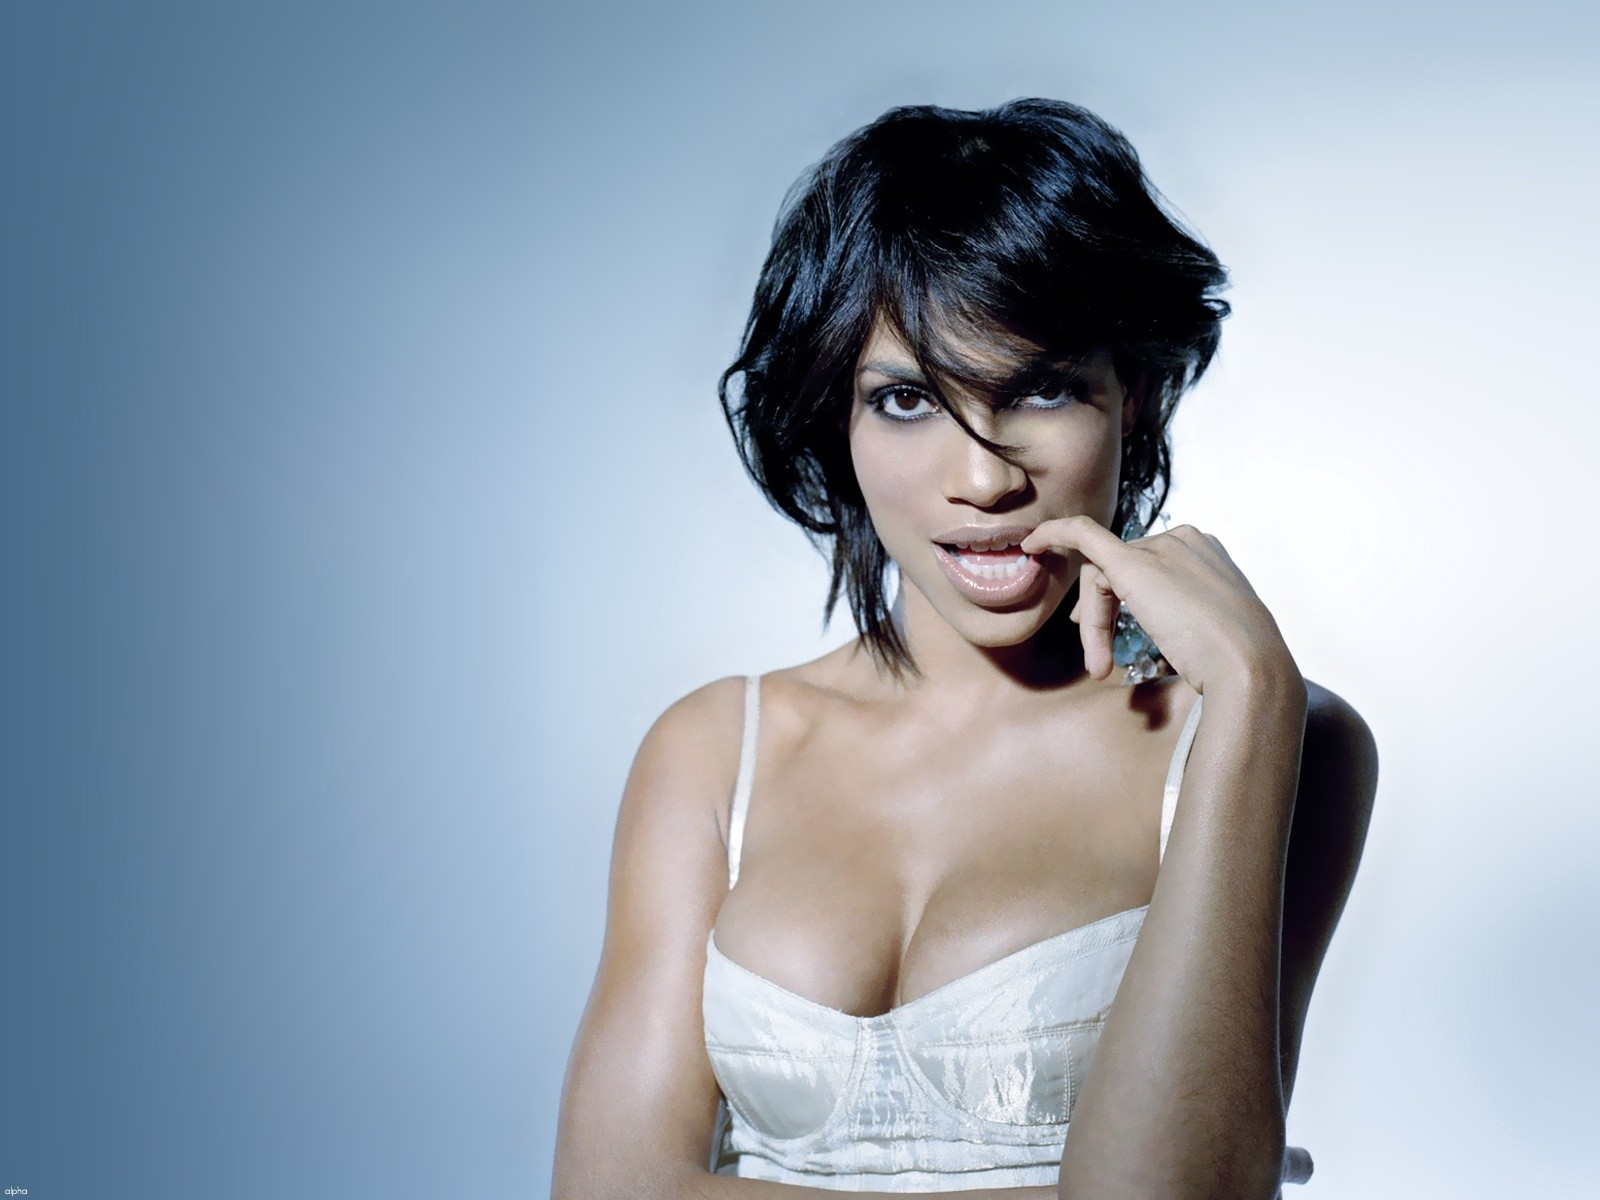 Rosario Dawson Wallpapers High Resolution and Quality Download 1600x1200